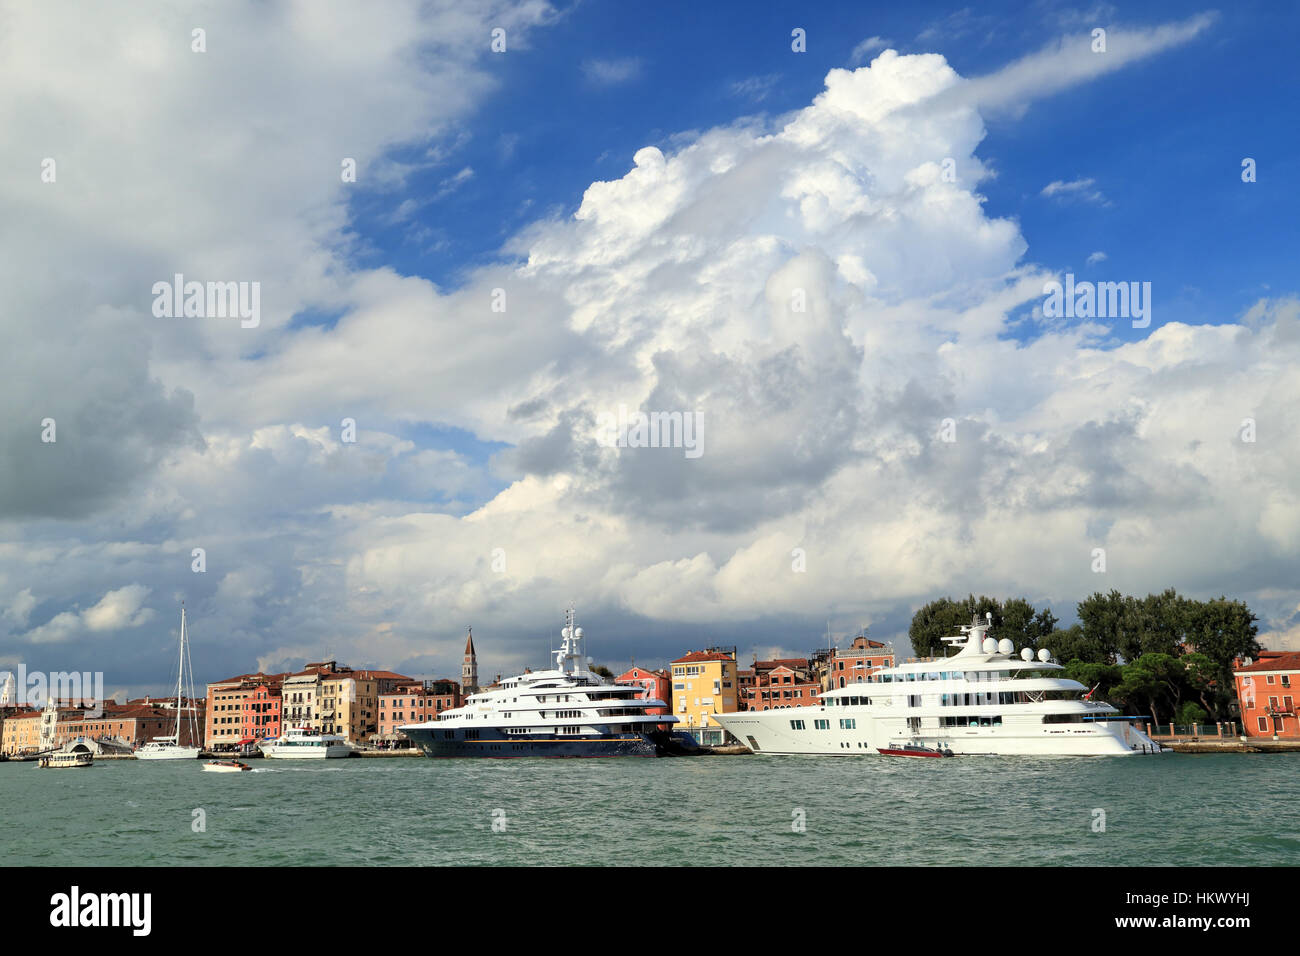 Superyachts Freedom and Lady S (IMO 8975067 and 1008217) - Stock Image